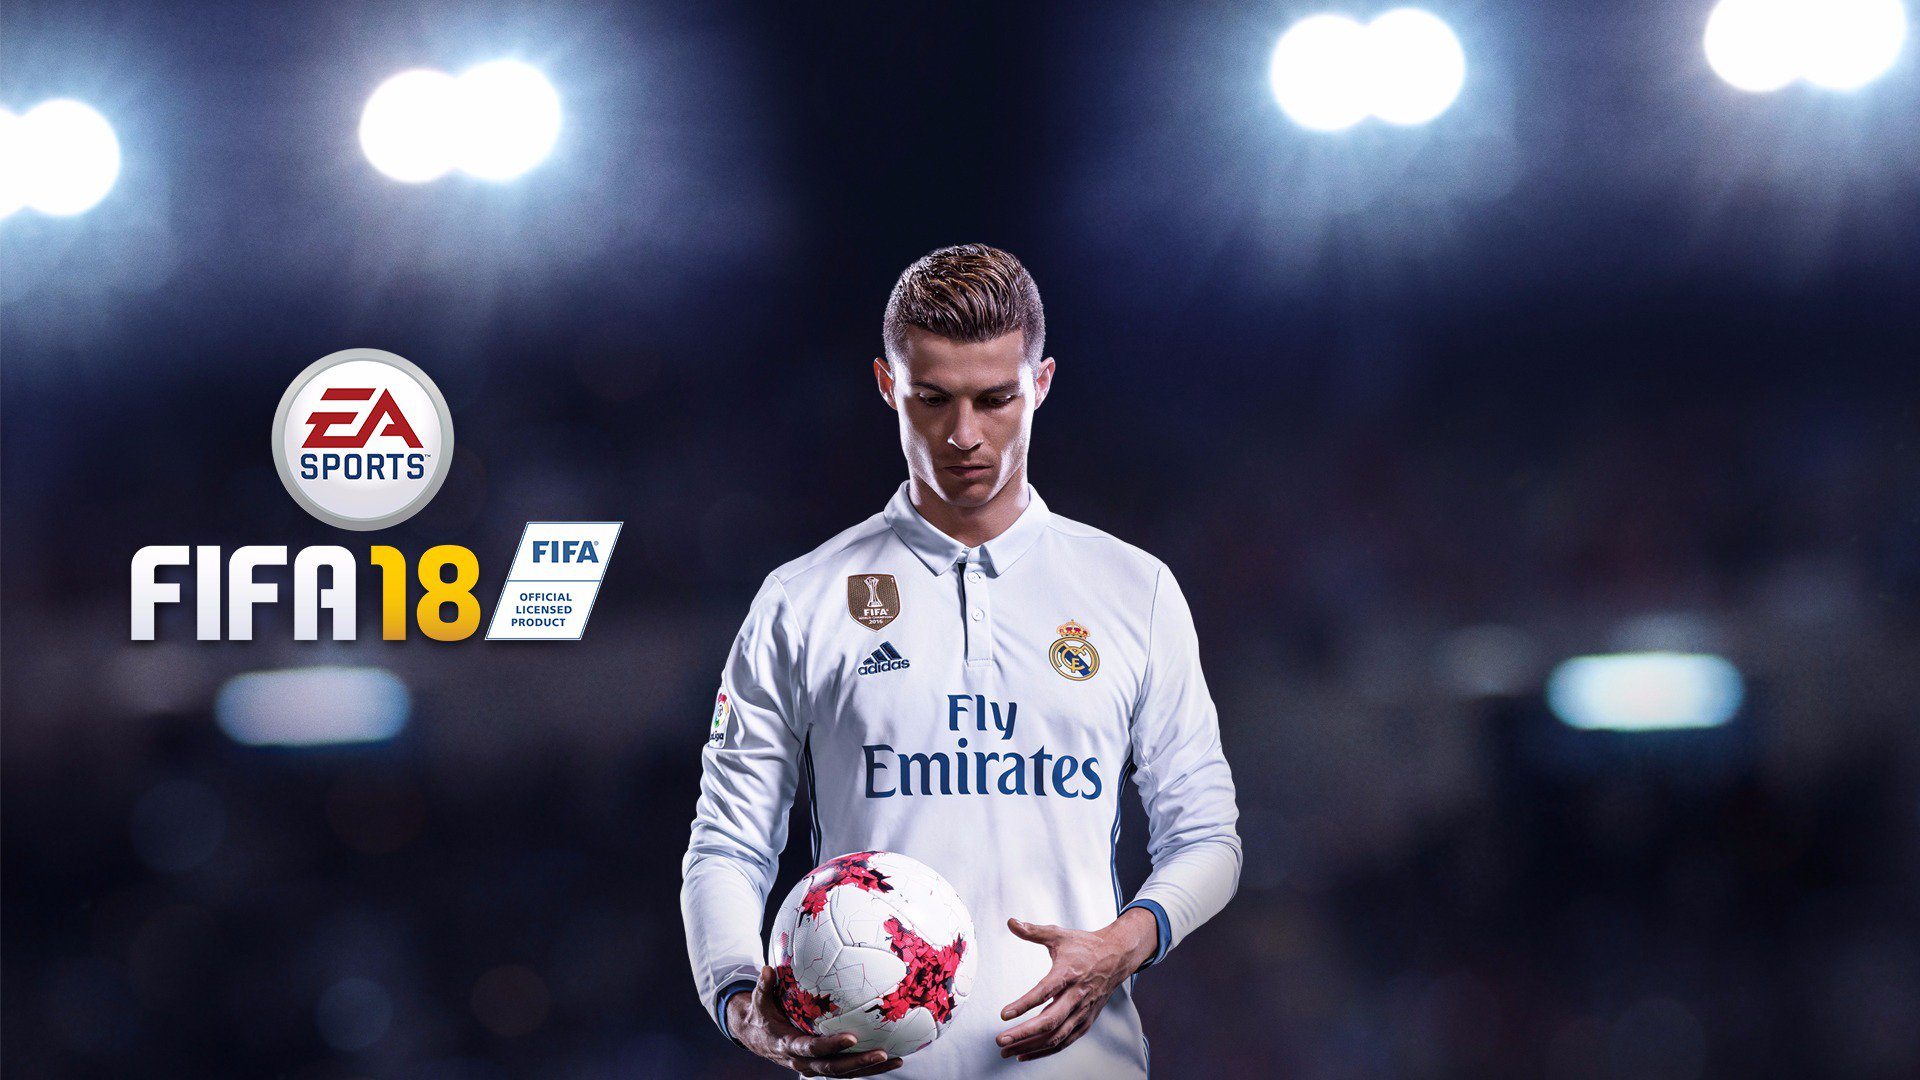 fifa 18 game ganha trailer e ter cristiano ronaldo na capa. Black Bedroom Furniture Sets. Home Design Ideas